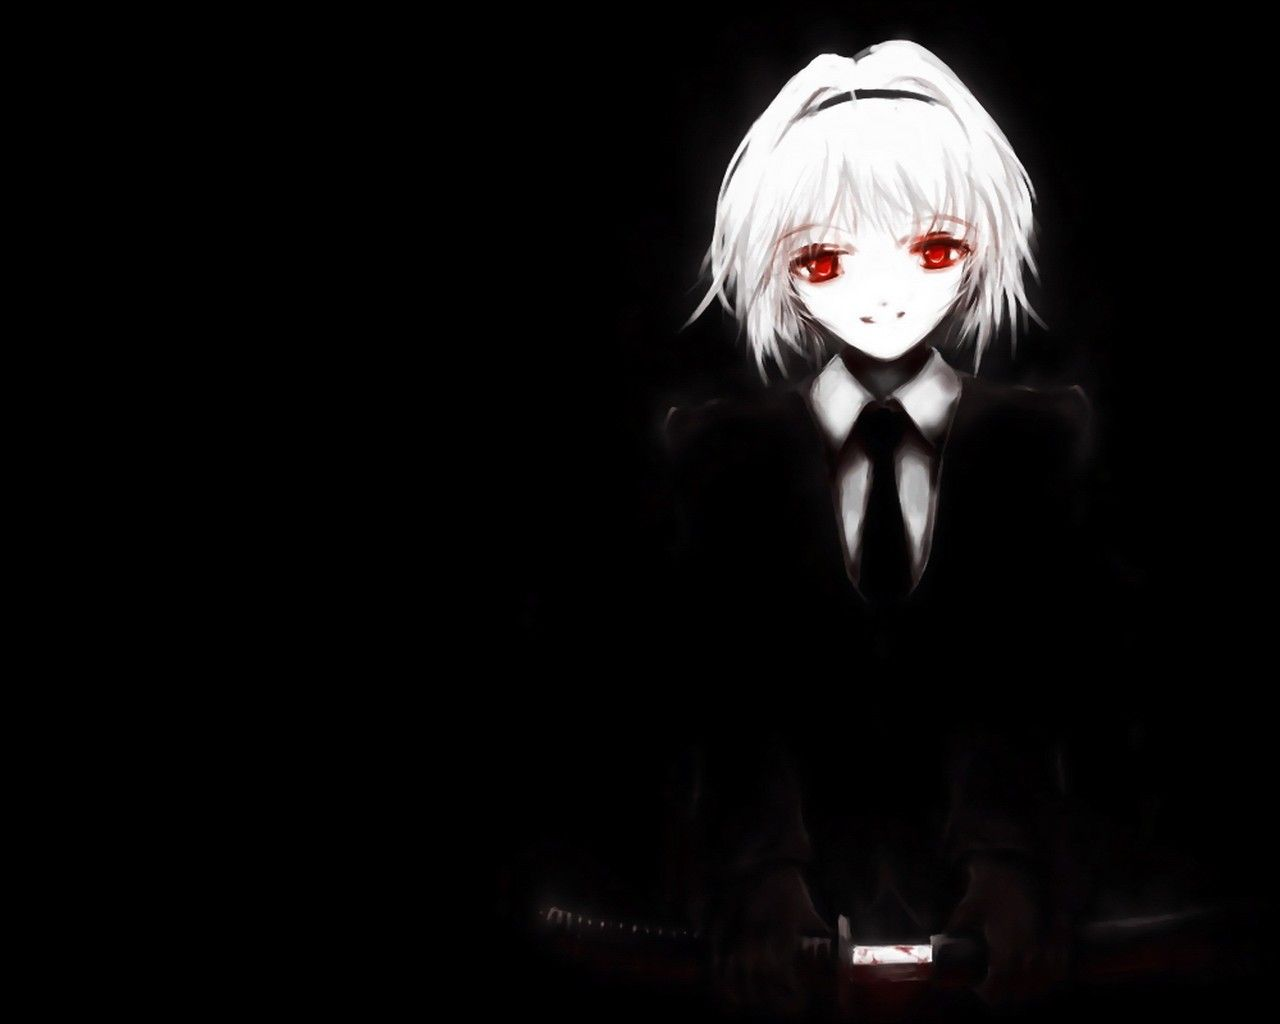 Creepy Anime Wallpapers Top Free Creepy Anime Backgrounds Wallpaperaccess